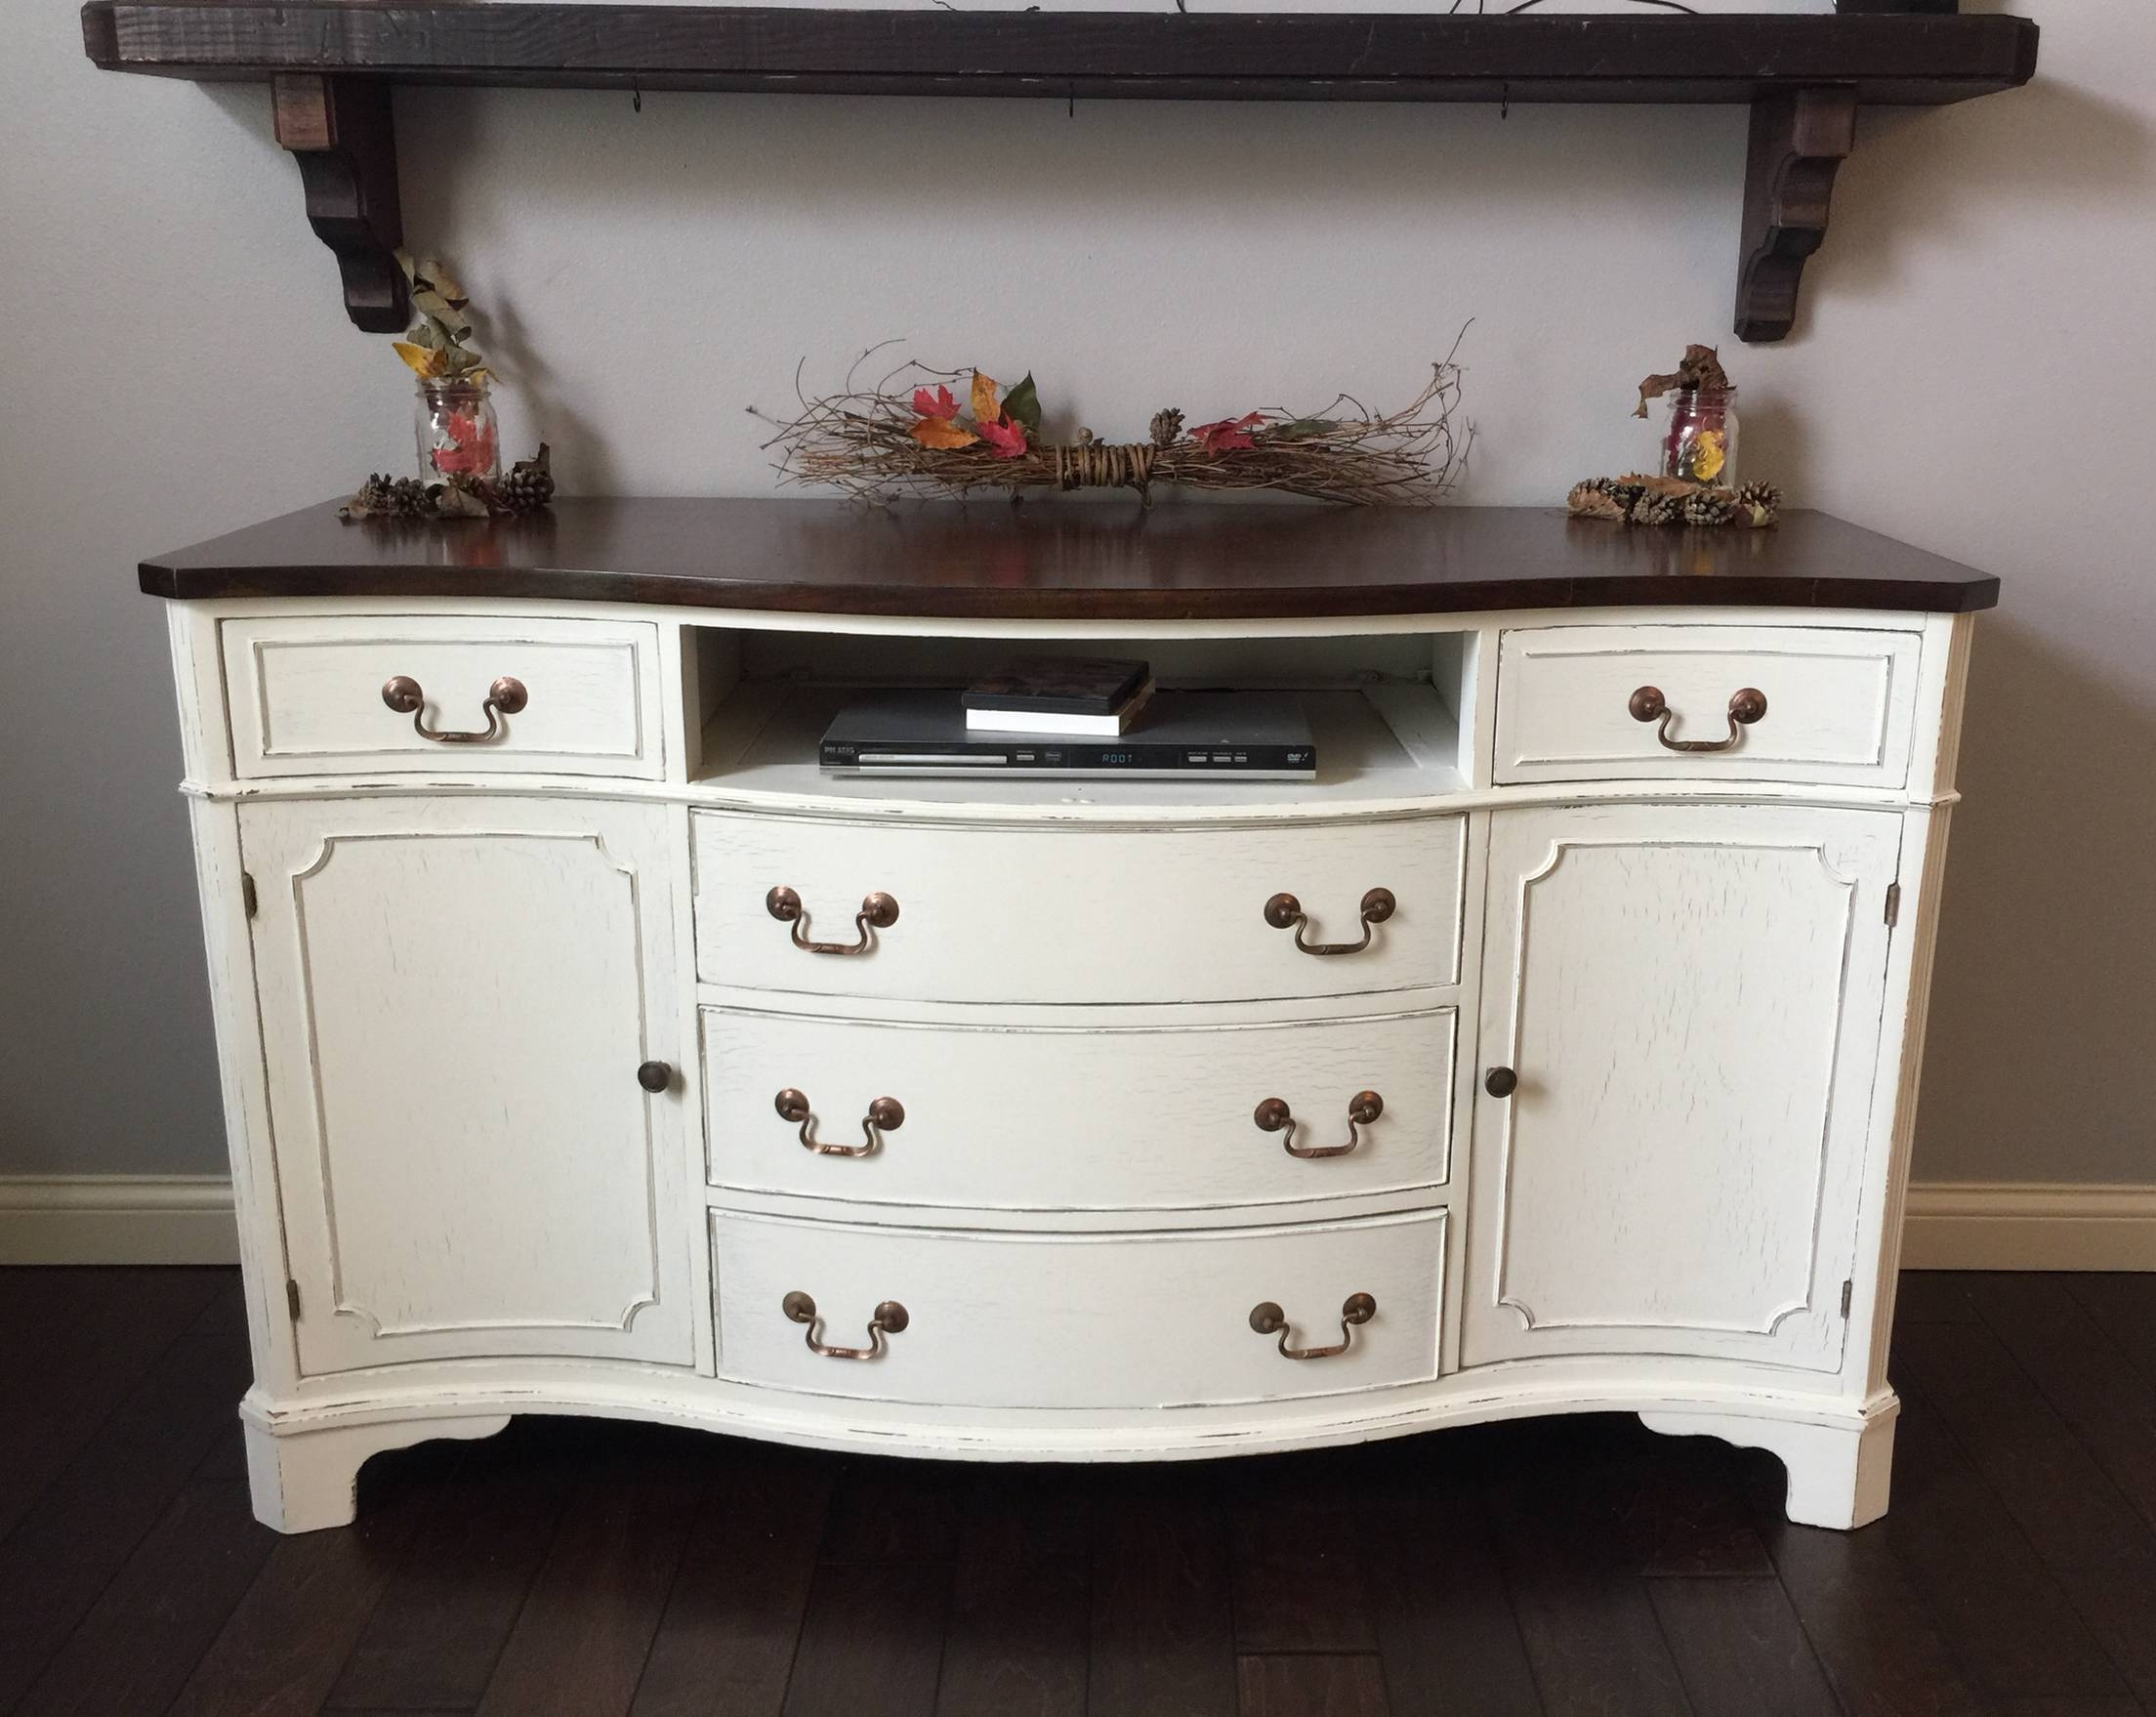 Awesome Distressed Buffet Sideboard – Bjdgjy Pertaining To 2018 Distressed Buffet Sideboards (#4 of 15)